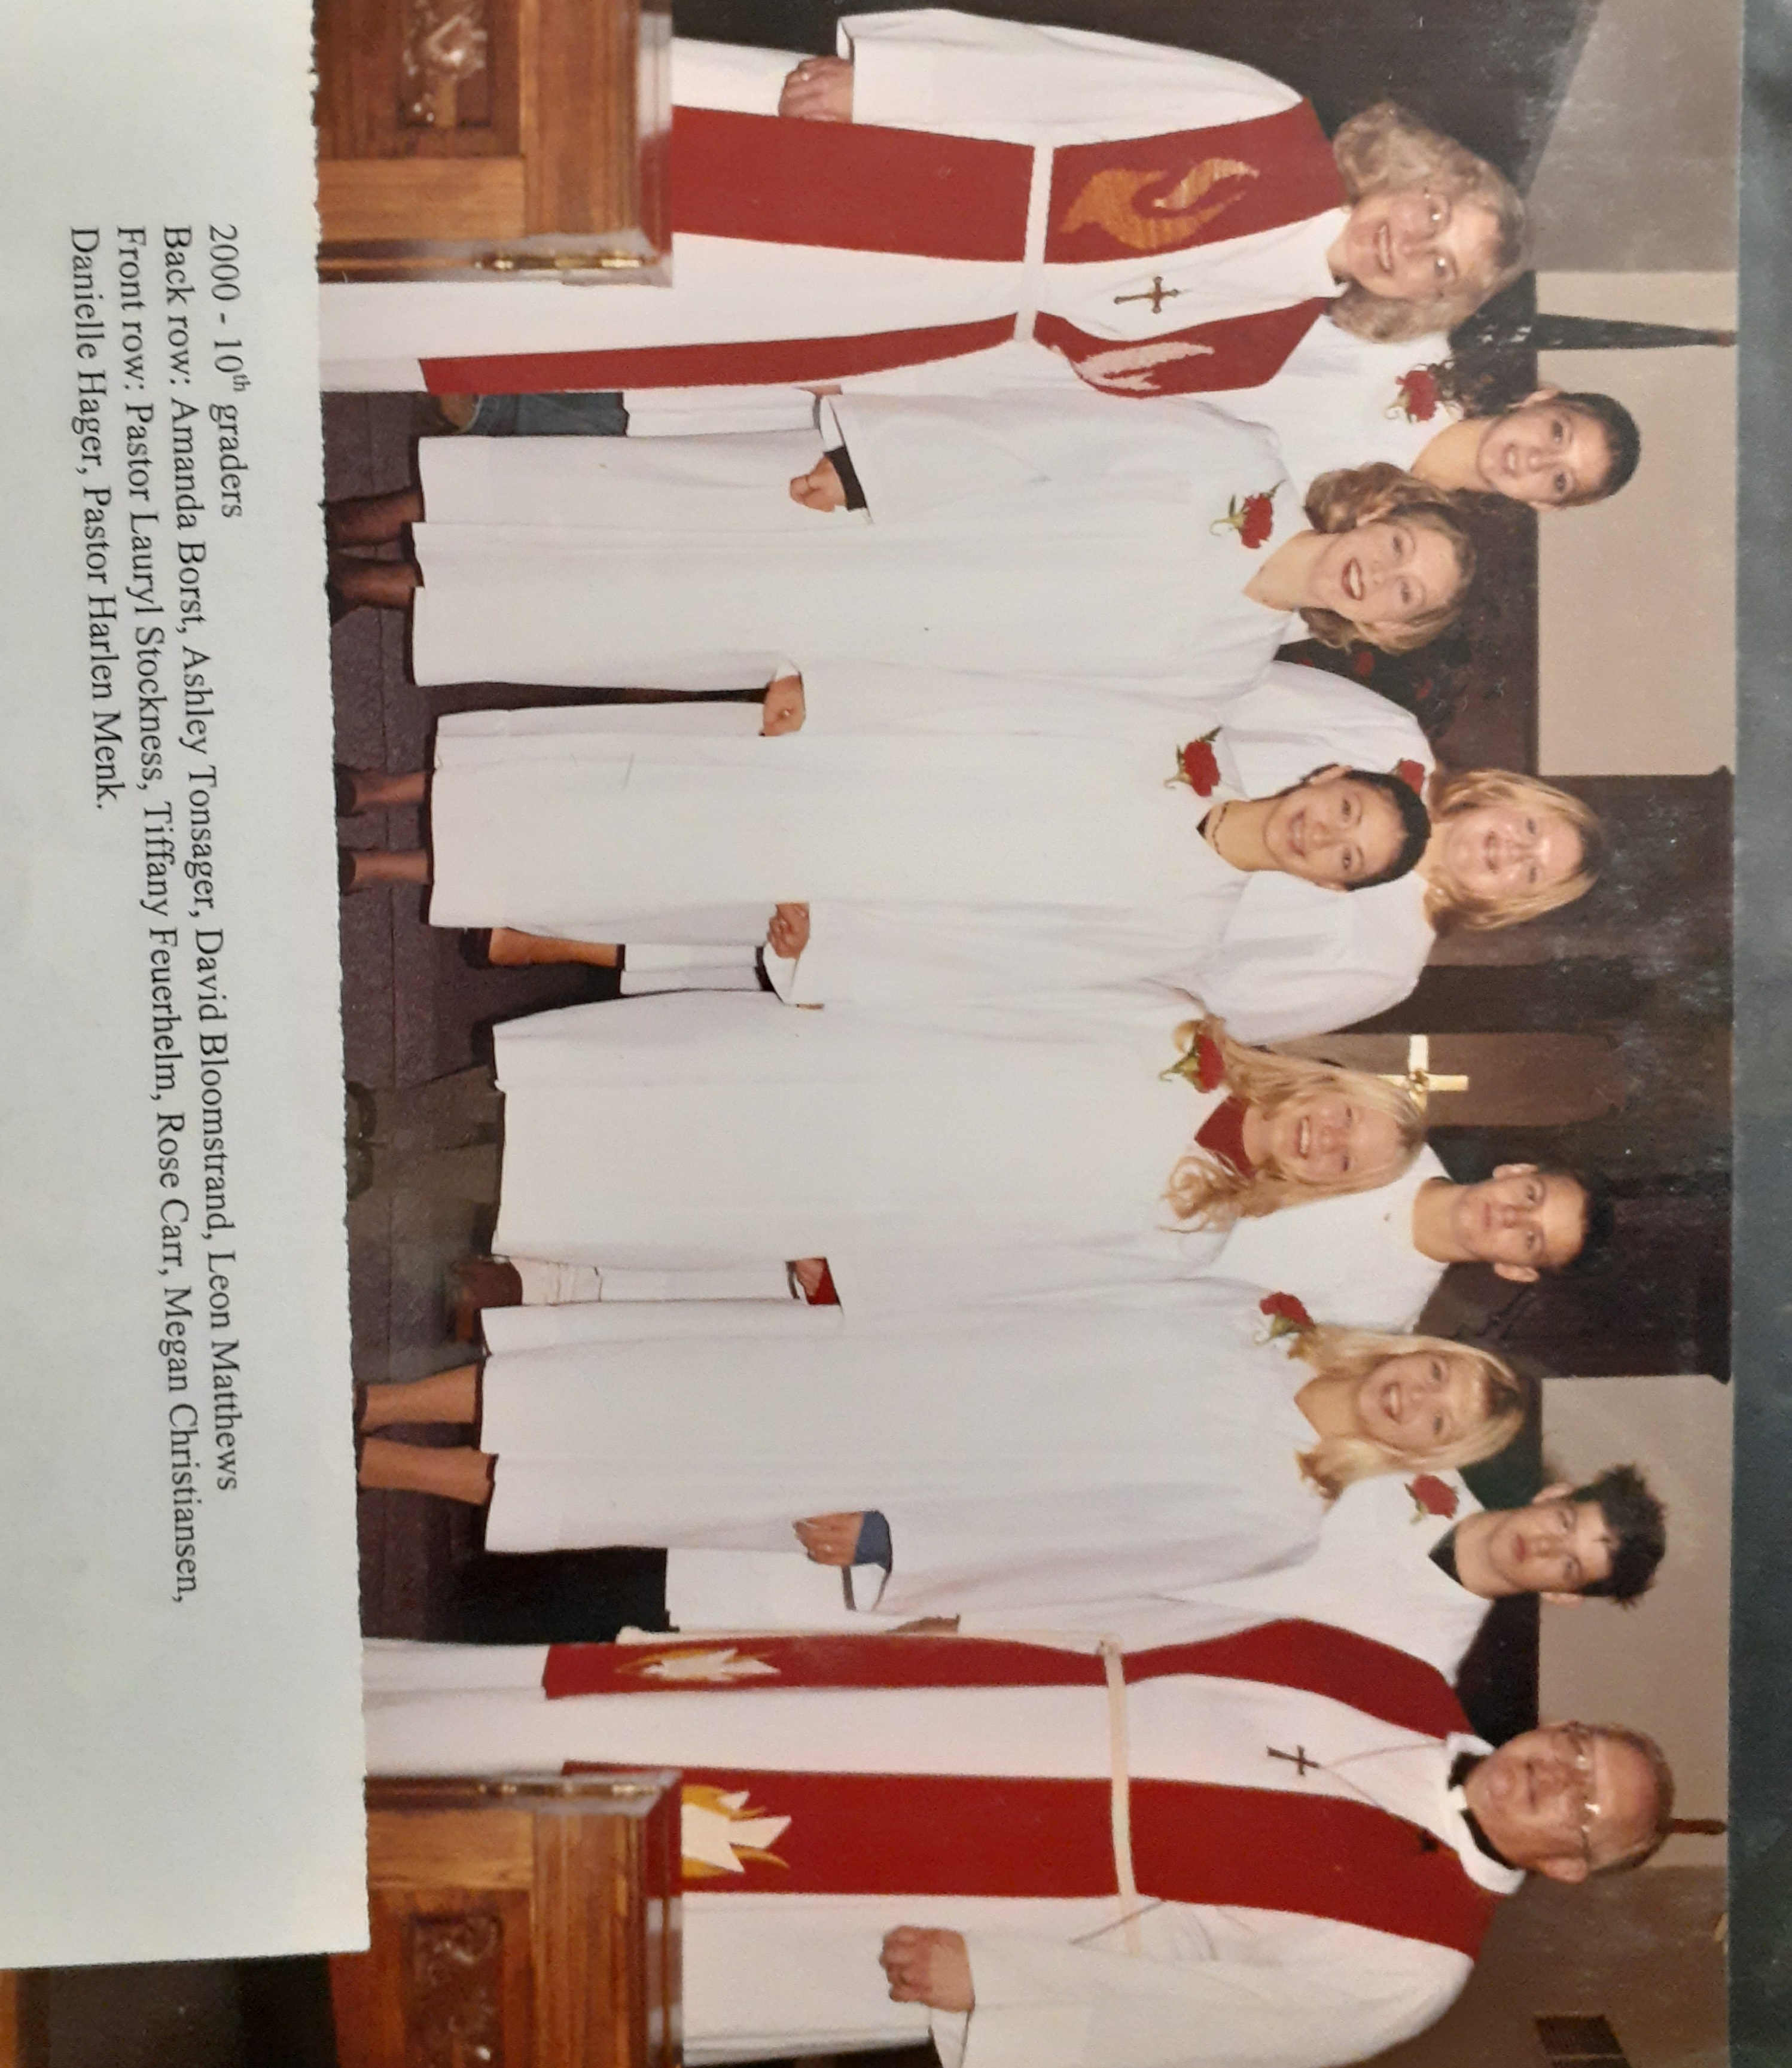 Confirmation pic 2000